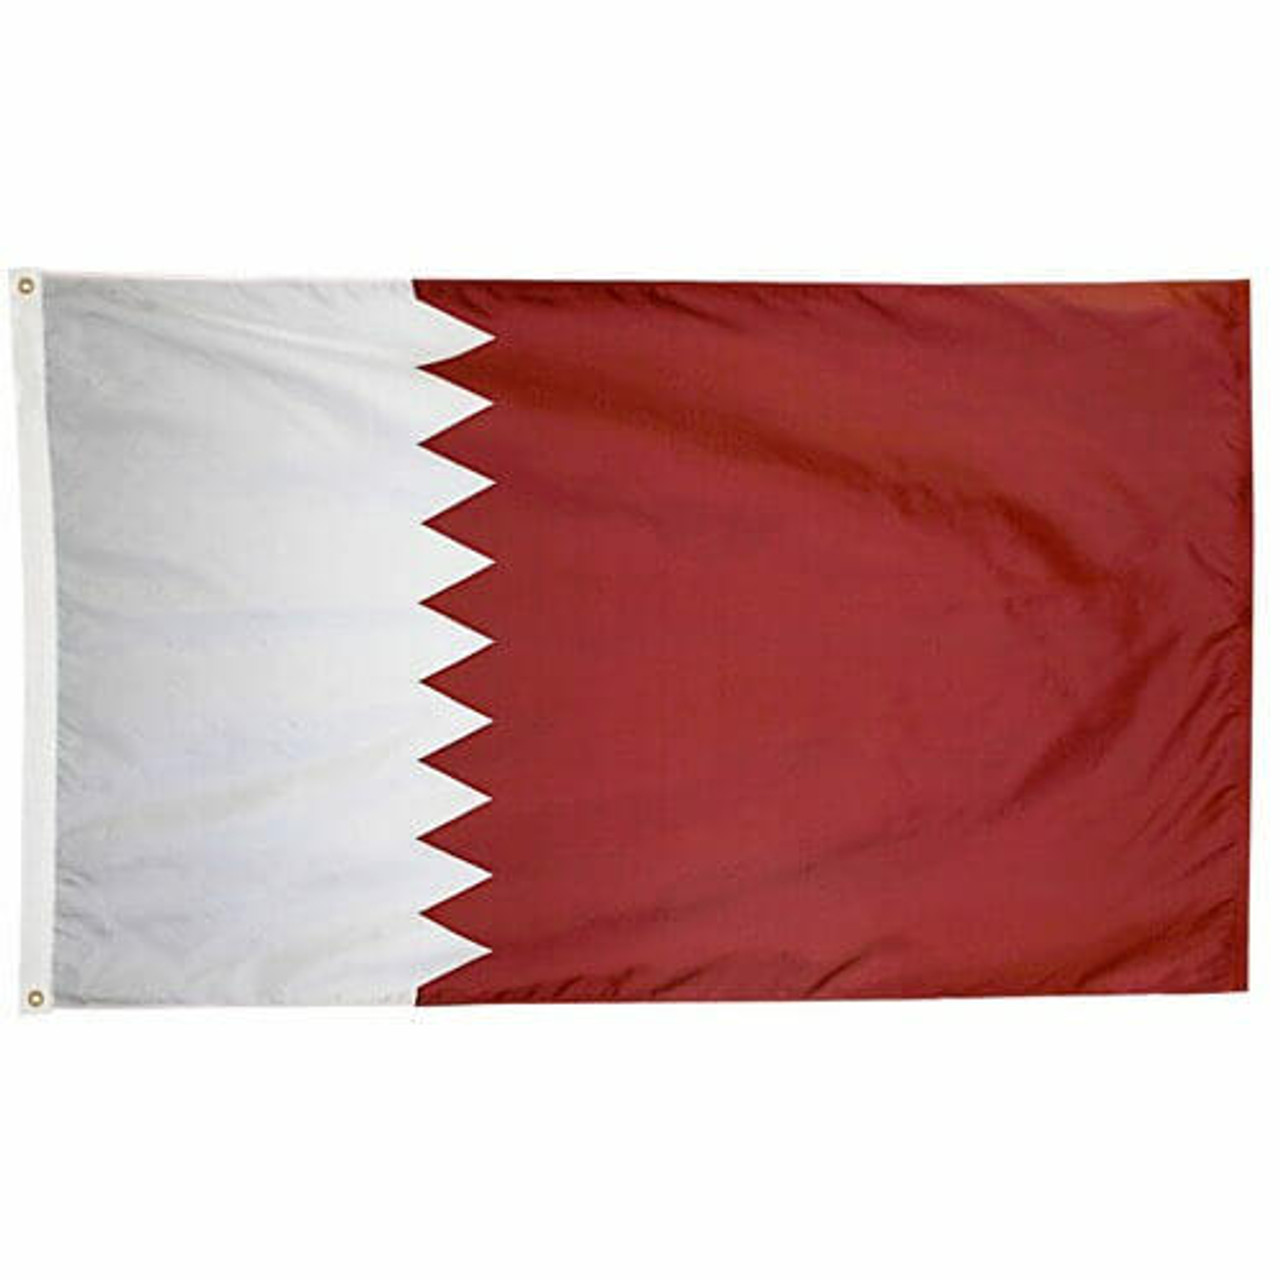 Qatar Flag with narrow white serrated part on hoist side and broad maroon serrated part on fly side